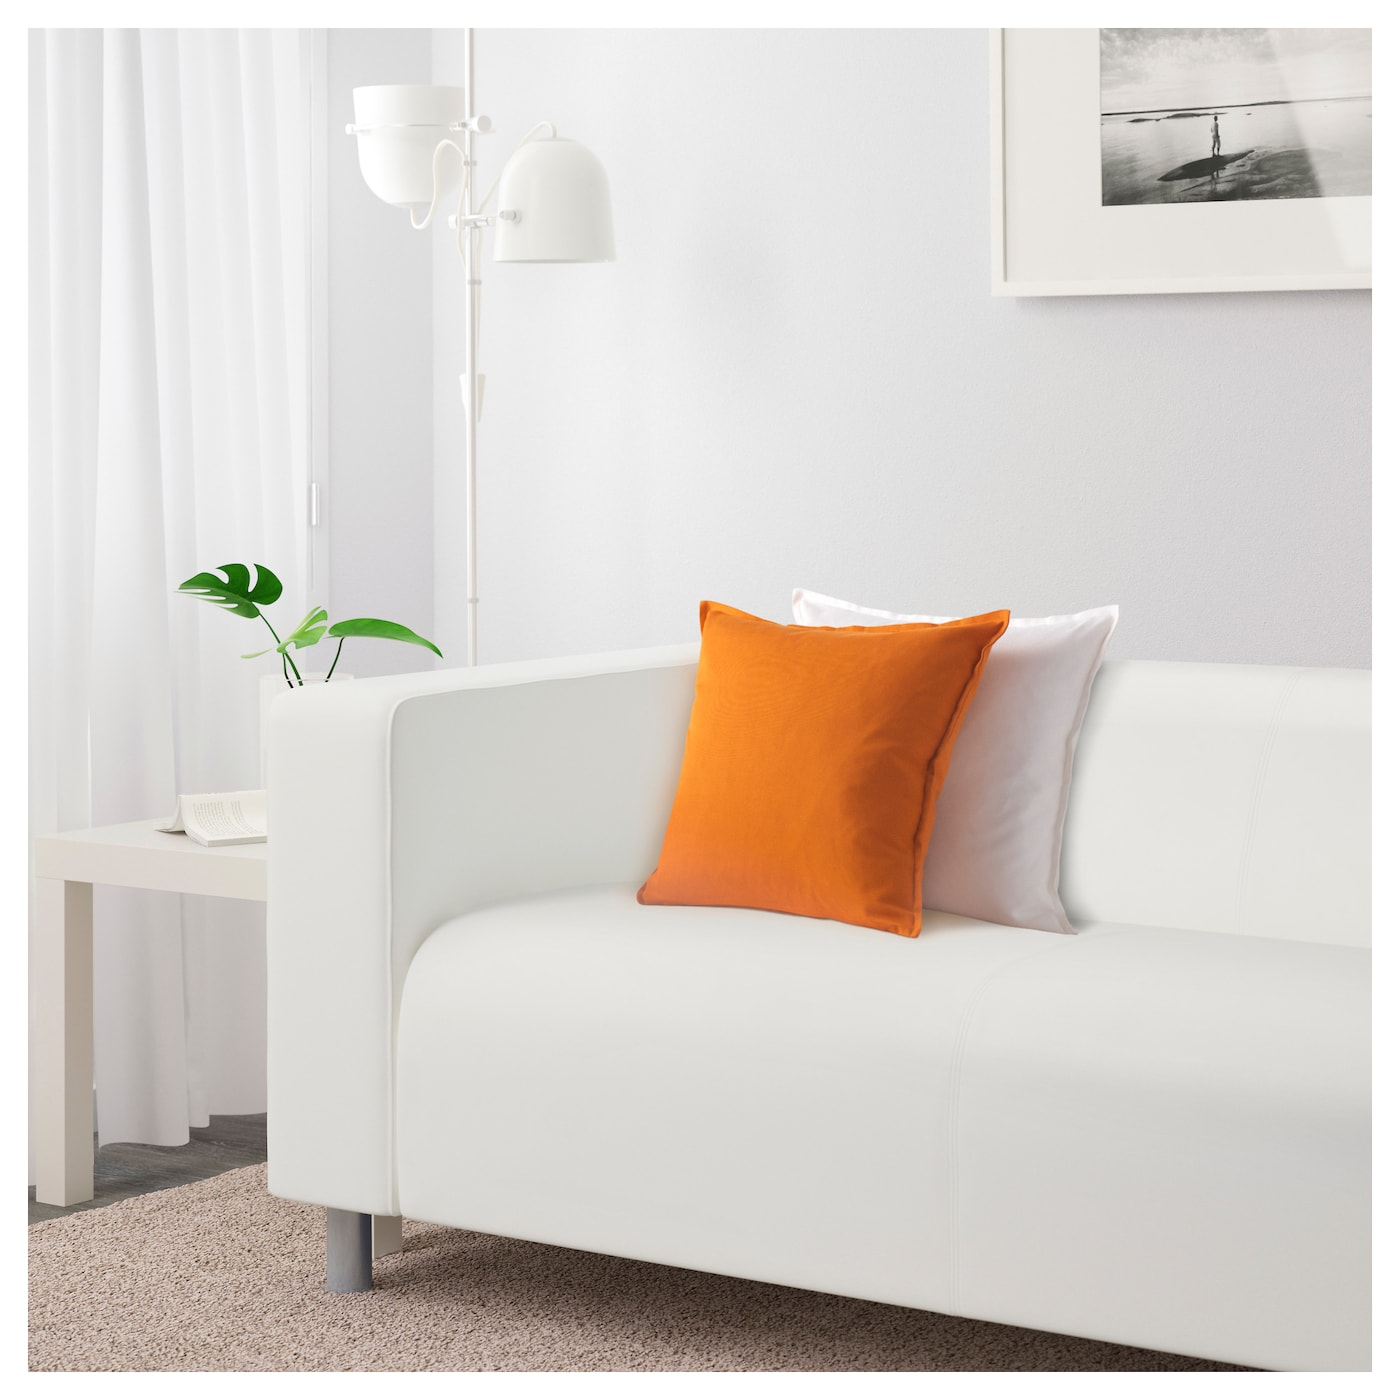 IKEA KLIPPAN two-seat sofa 10 year guarantee. Read about the terms in the guarantee brochure.